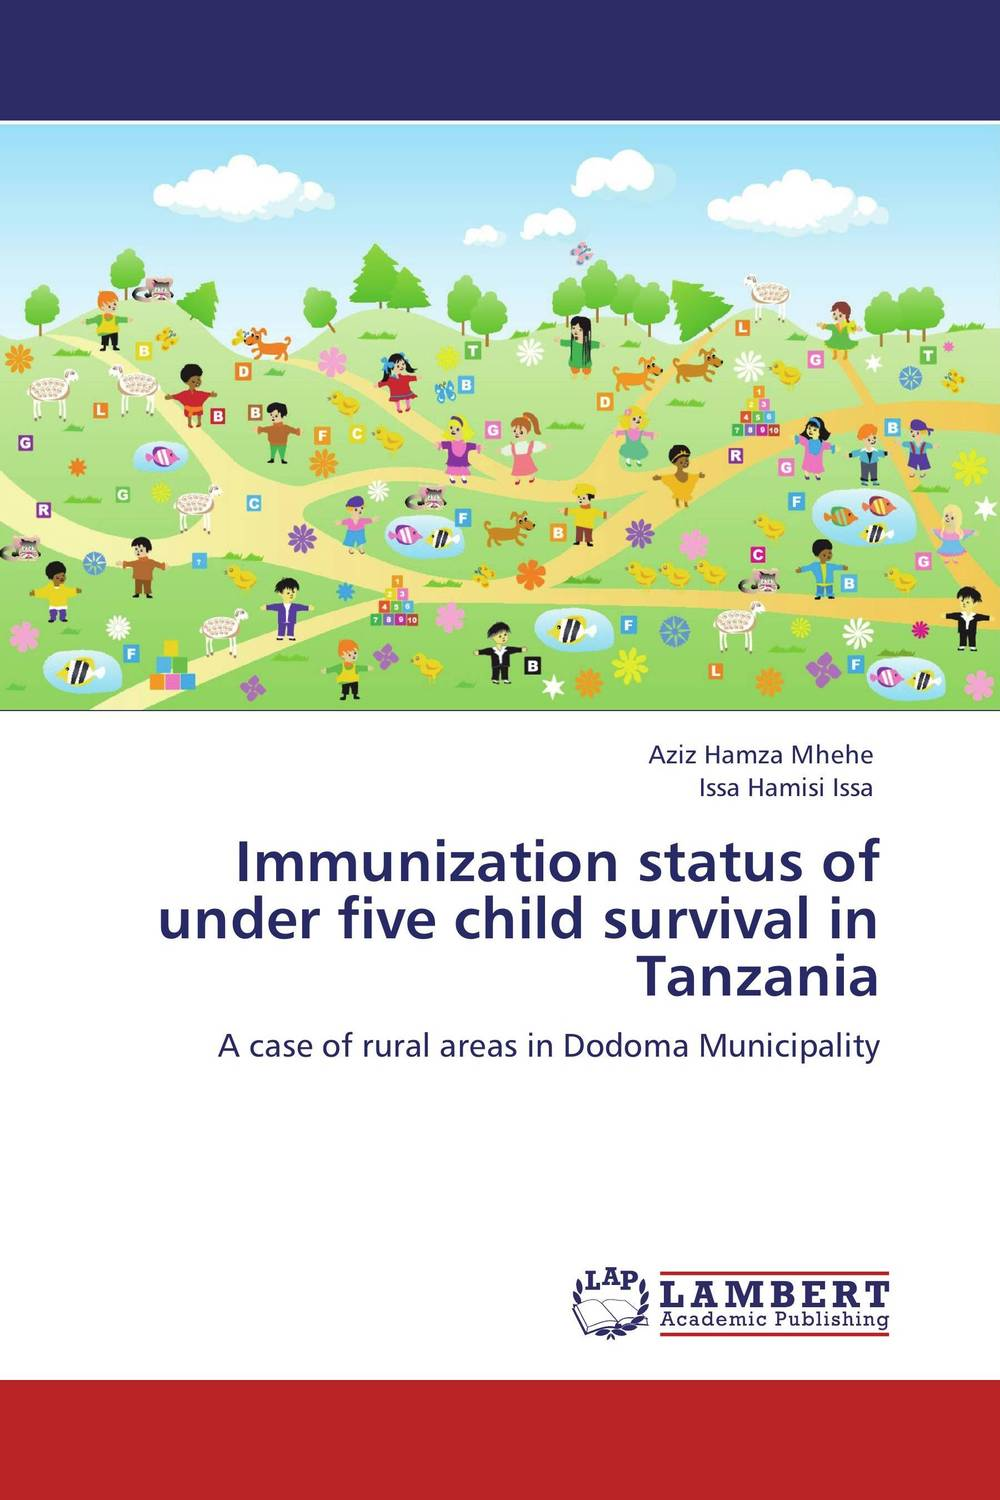 Immunization status of under five child survival in Tanzania 3d ручка myriwell rp400a